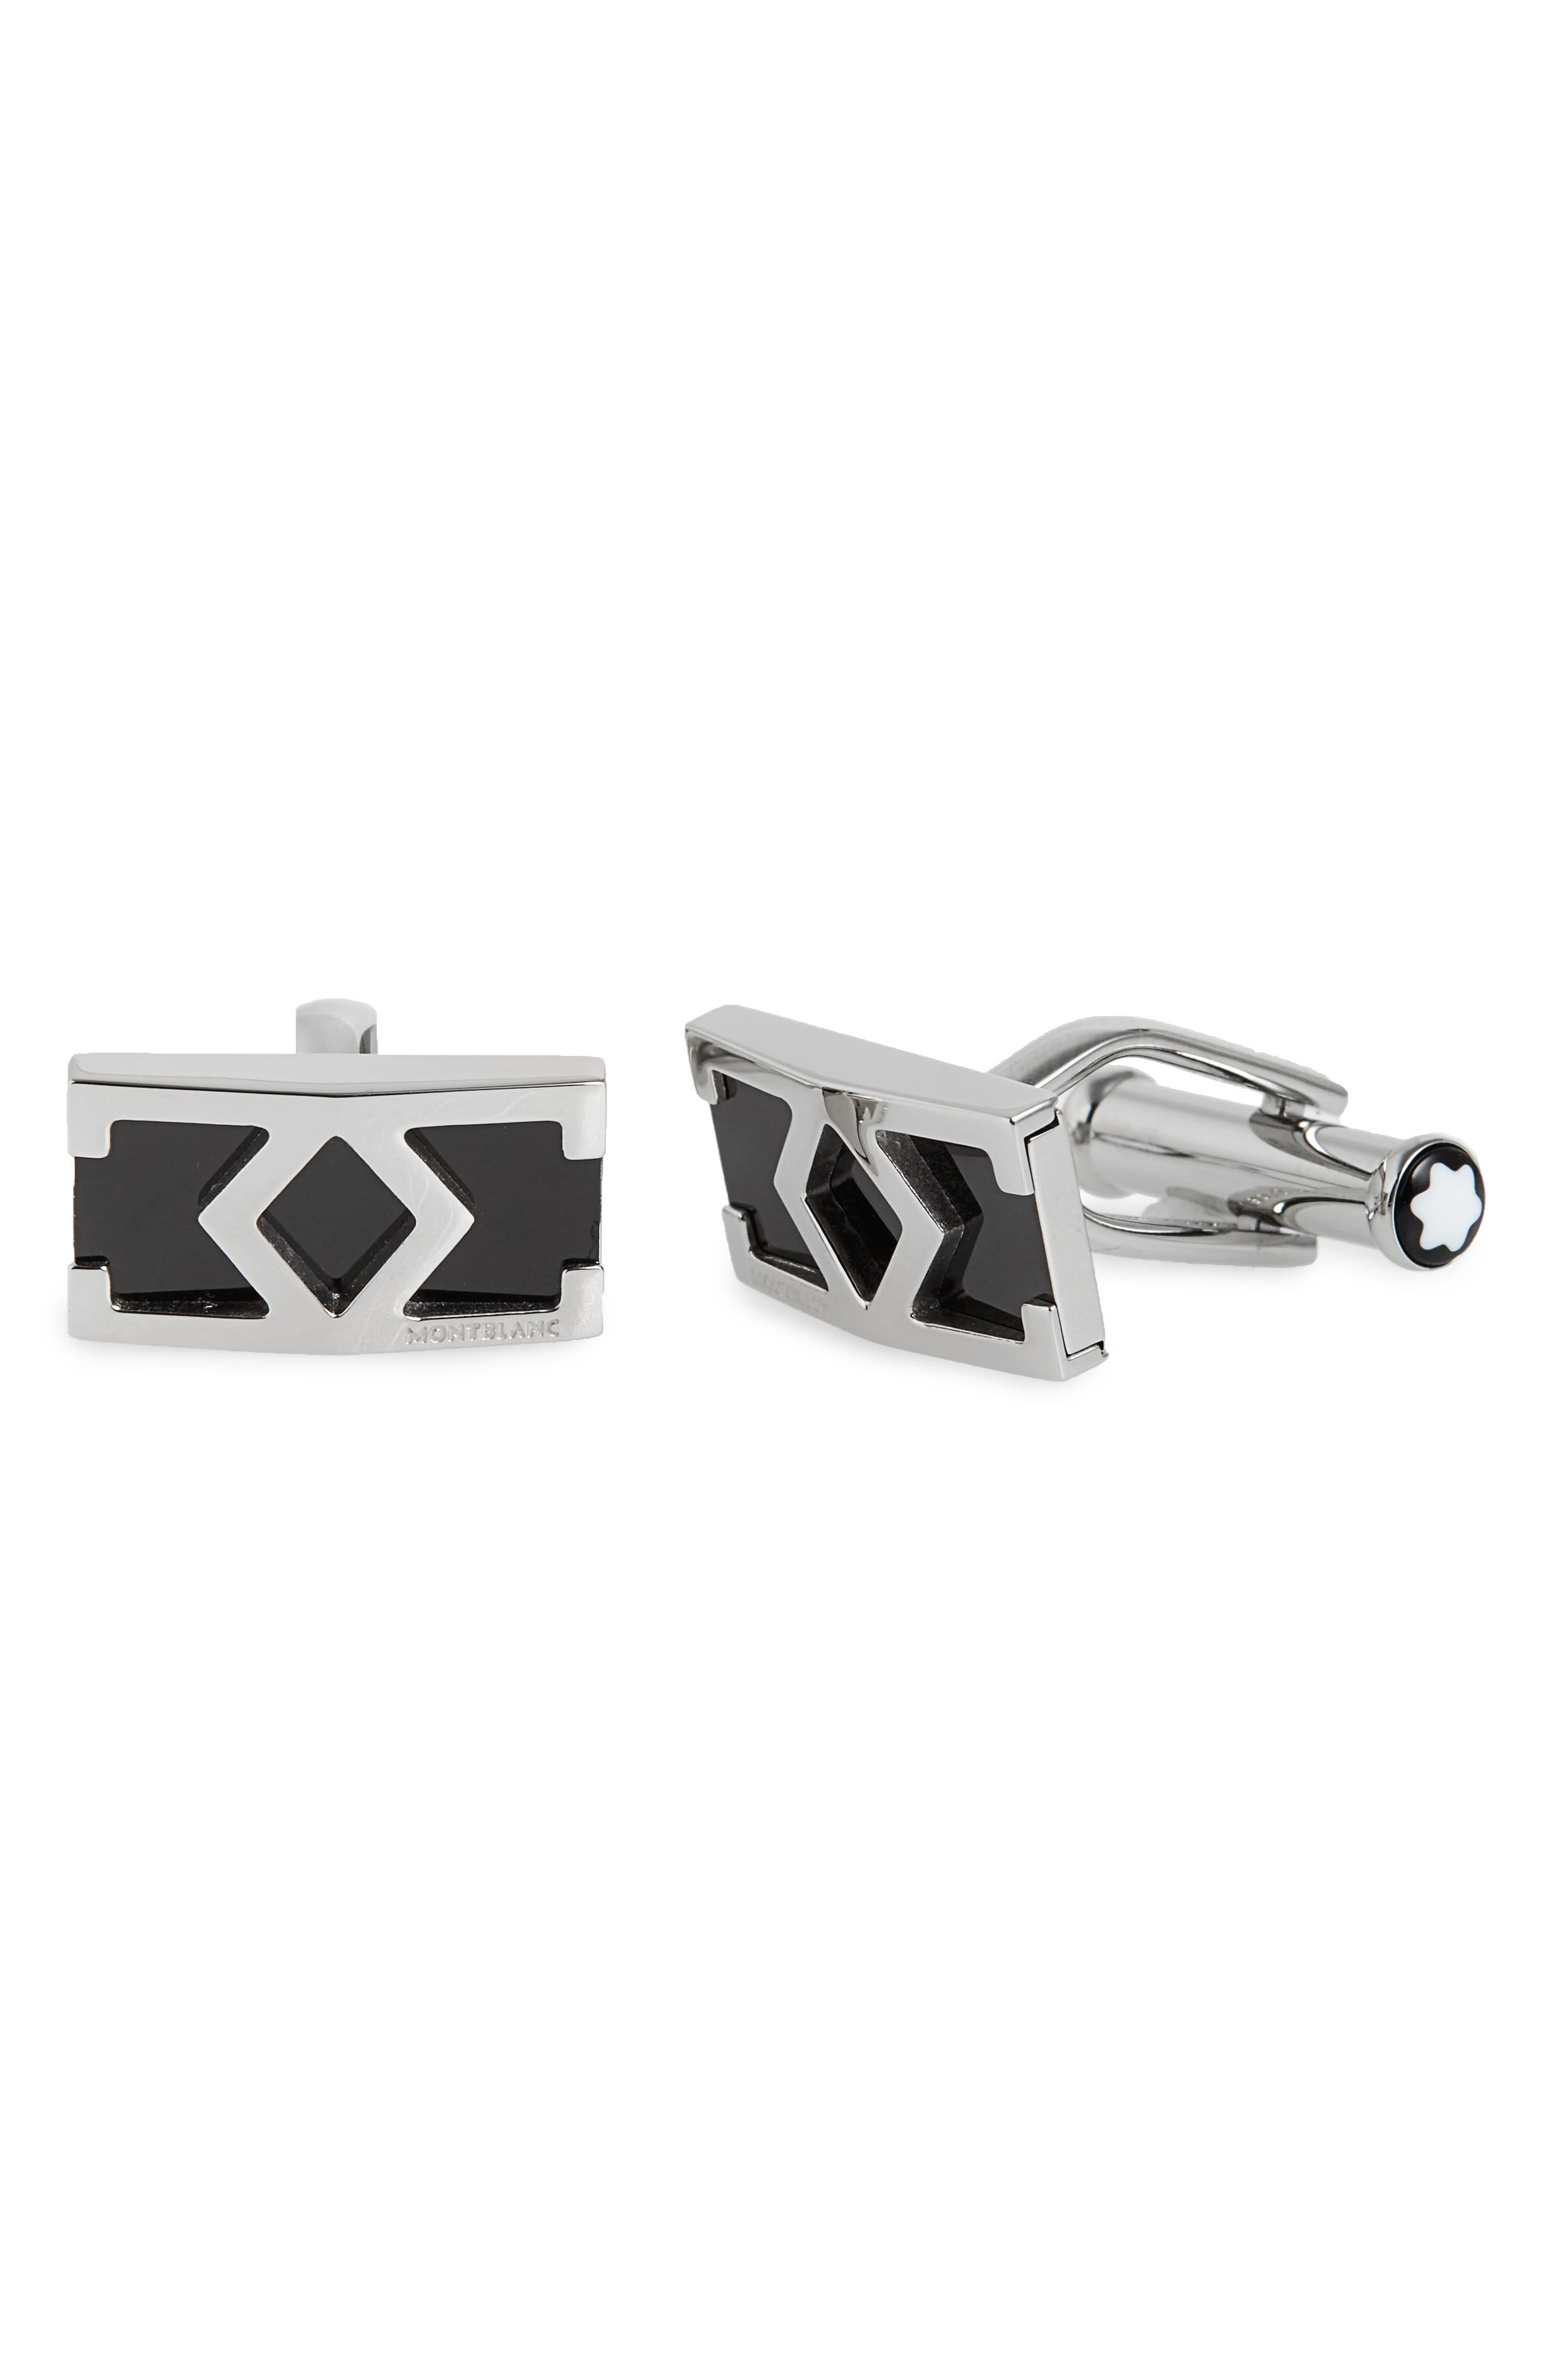 MONTBLANC M Motif Cuff Links, Main, color, STAINLESS STEEL